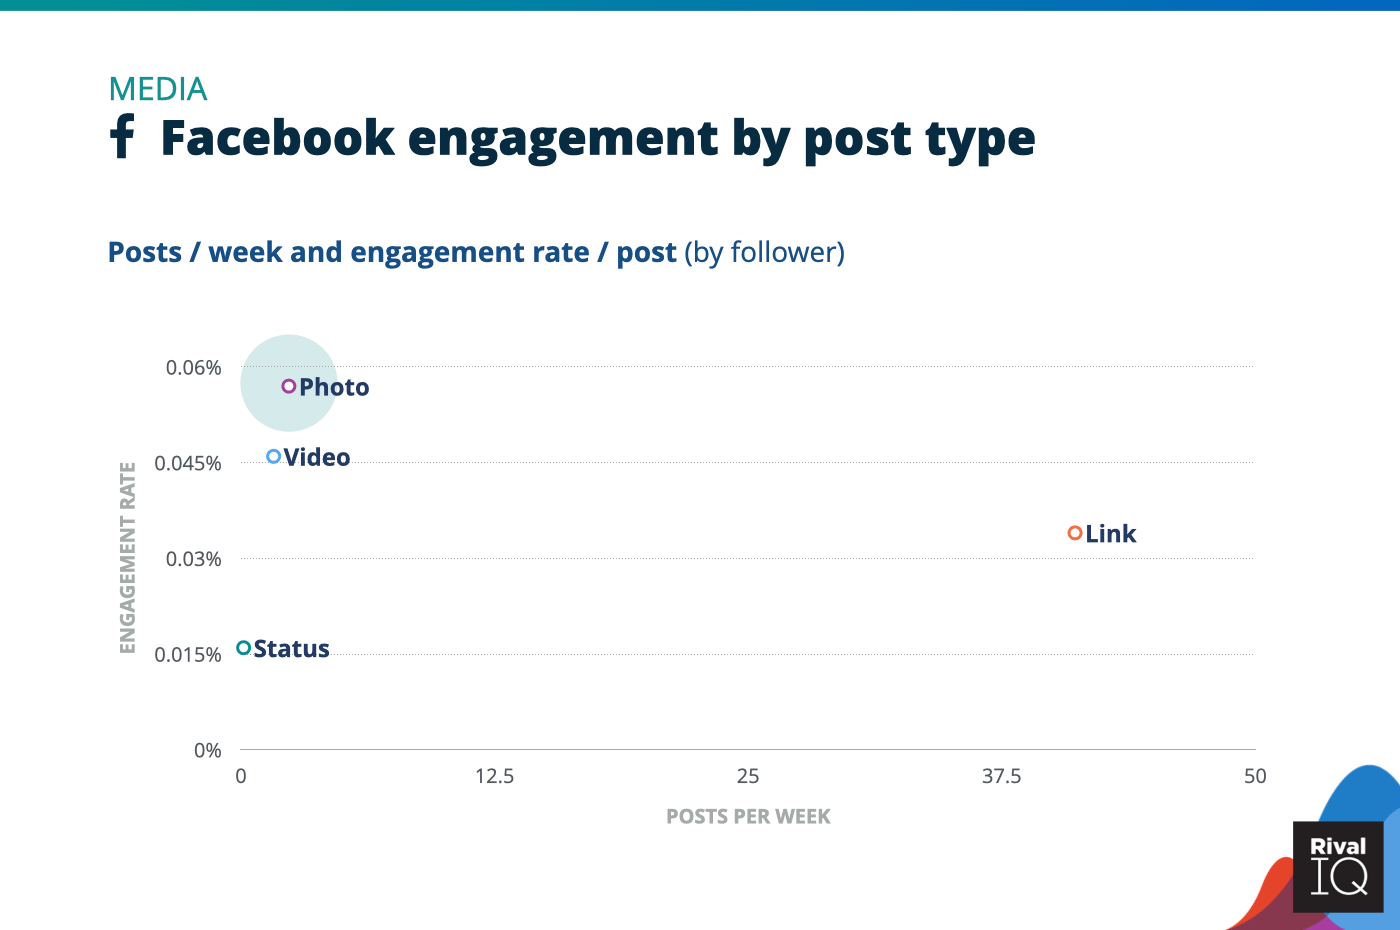 Chart of Facebook posts per week and engagement rate by post type, Media